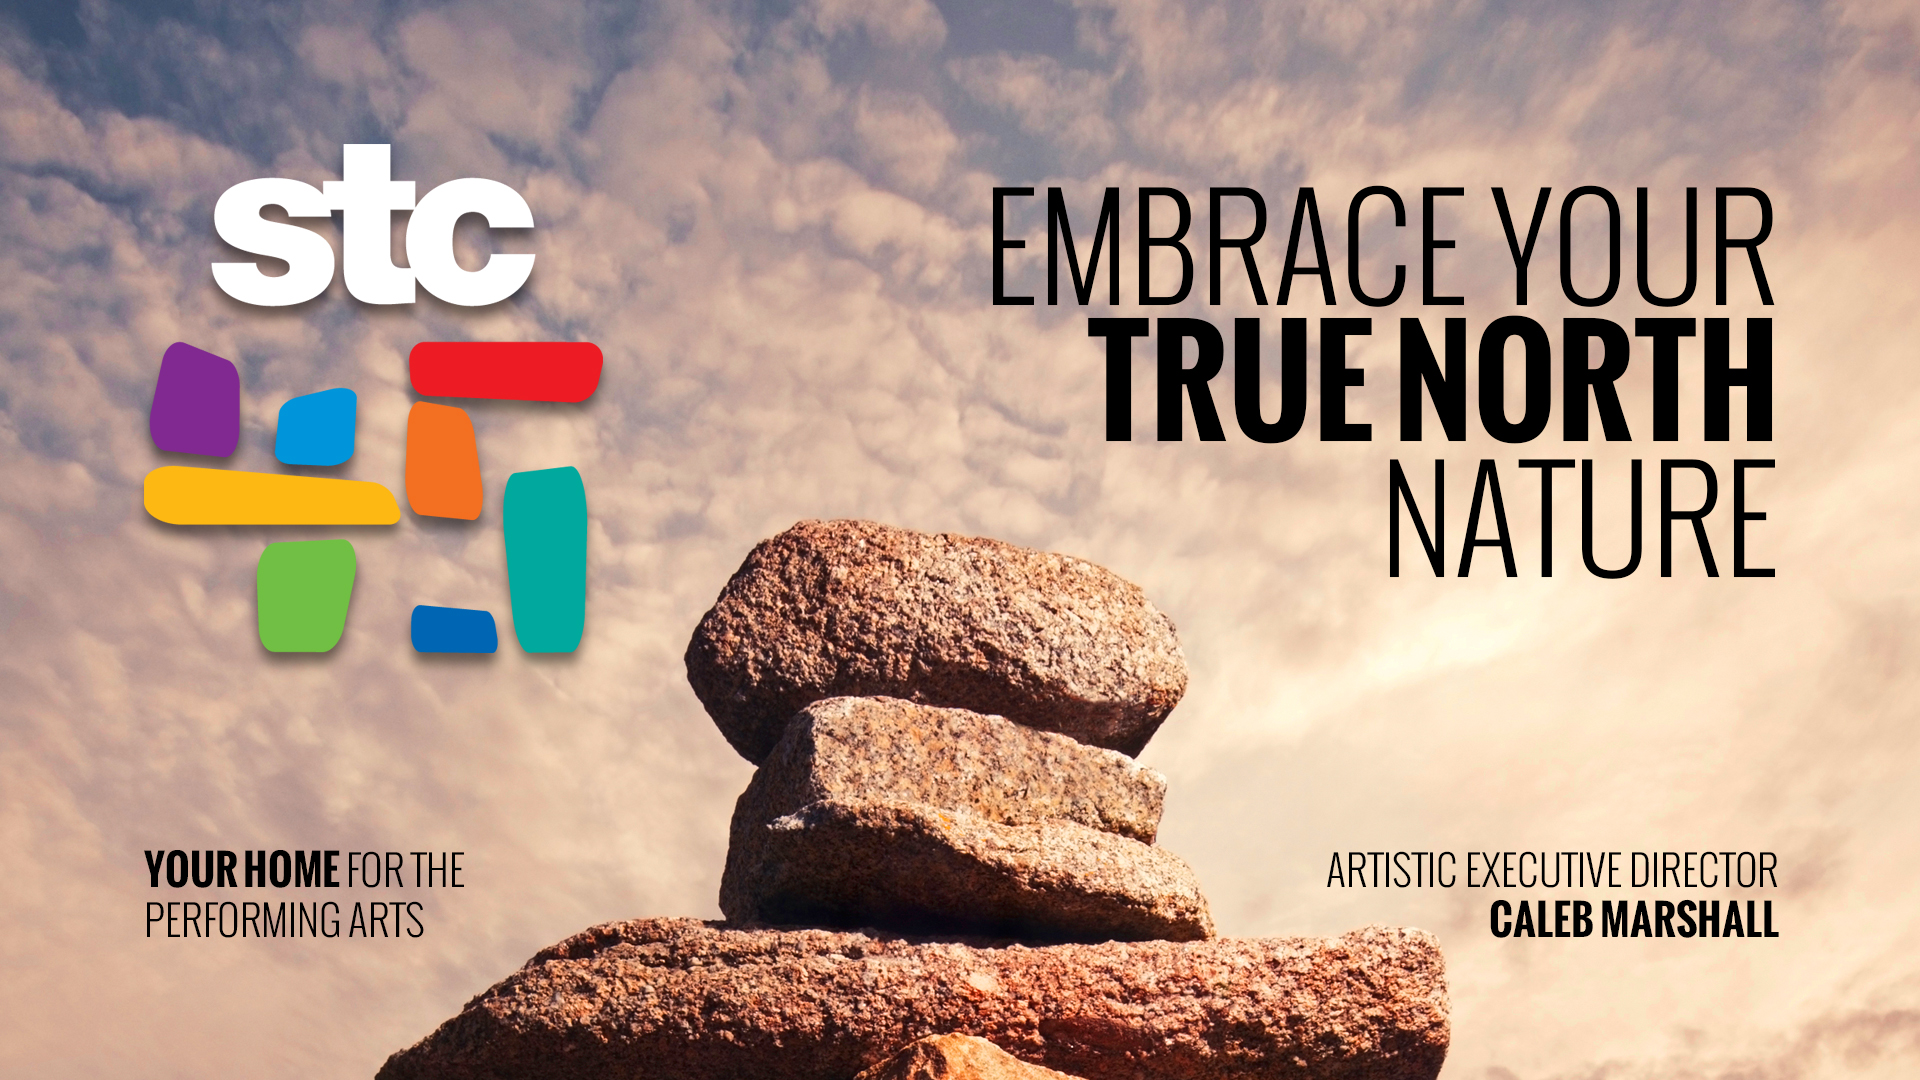 DISCOVER THE TRUE NORTH WITH STC IN THEIR 45TH ANNIVERSARY SEASON!